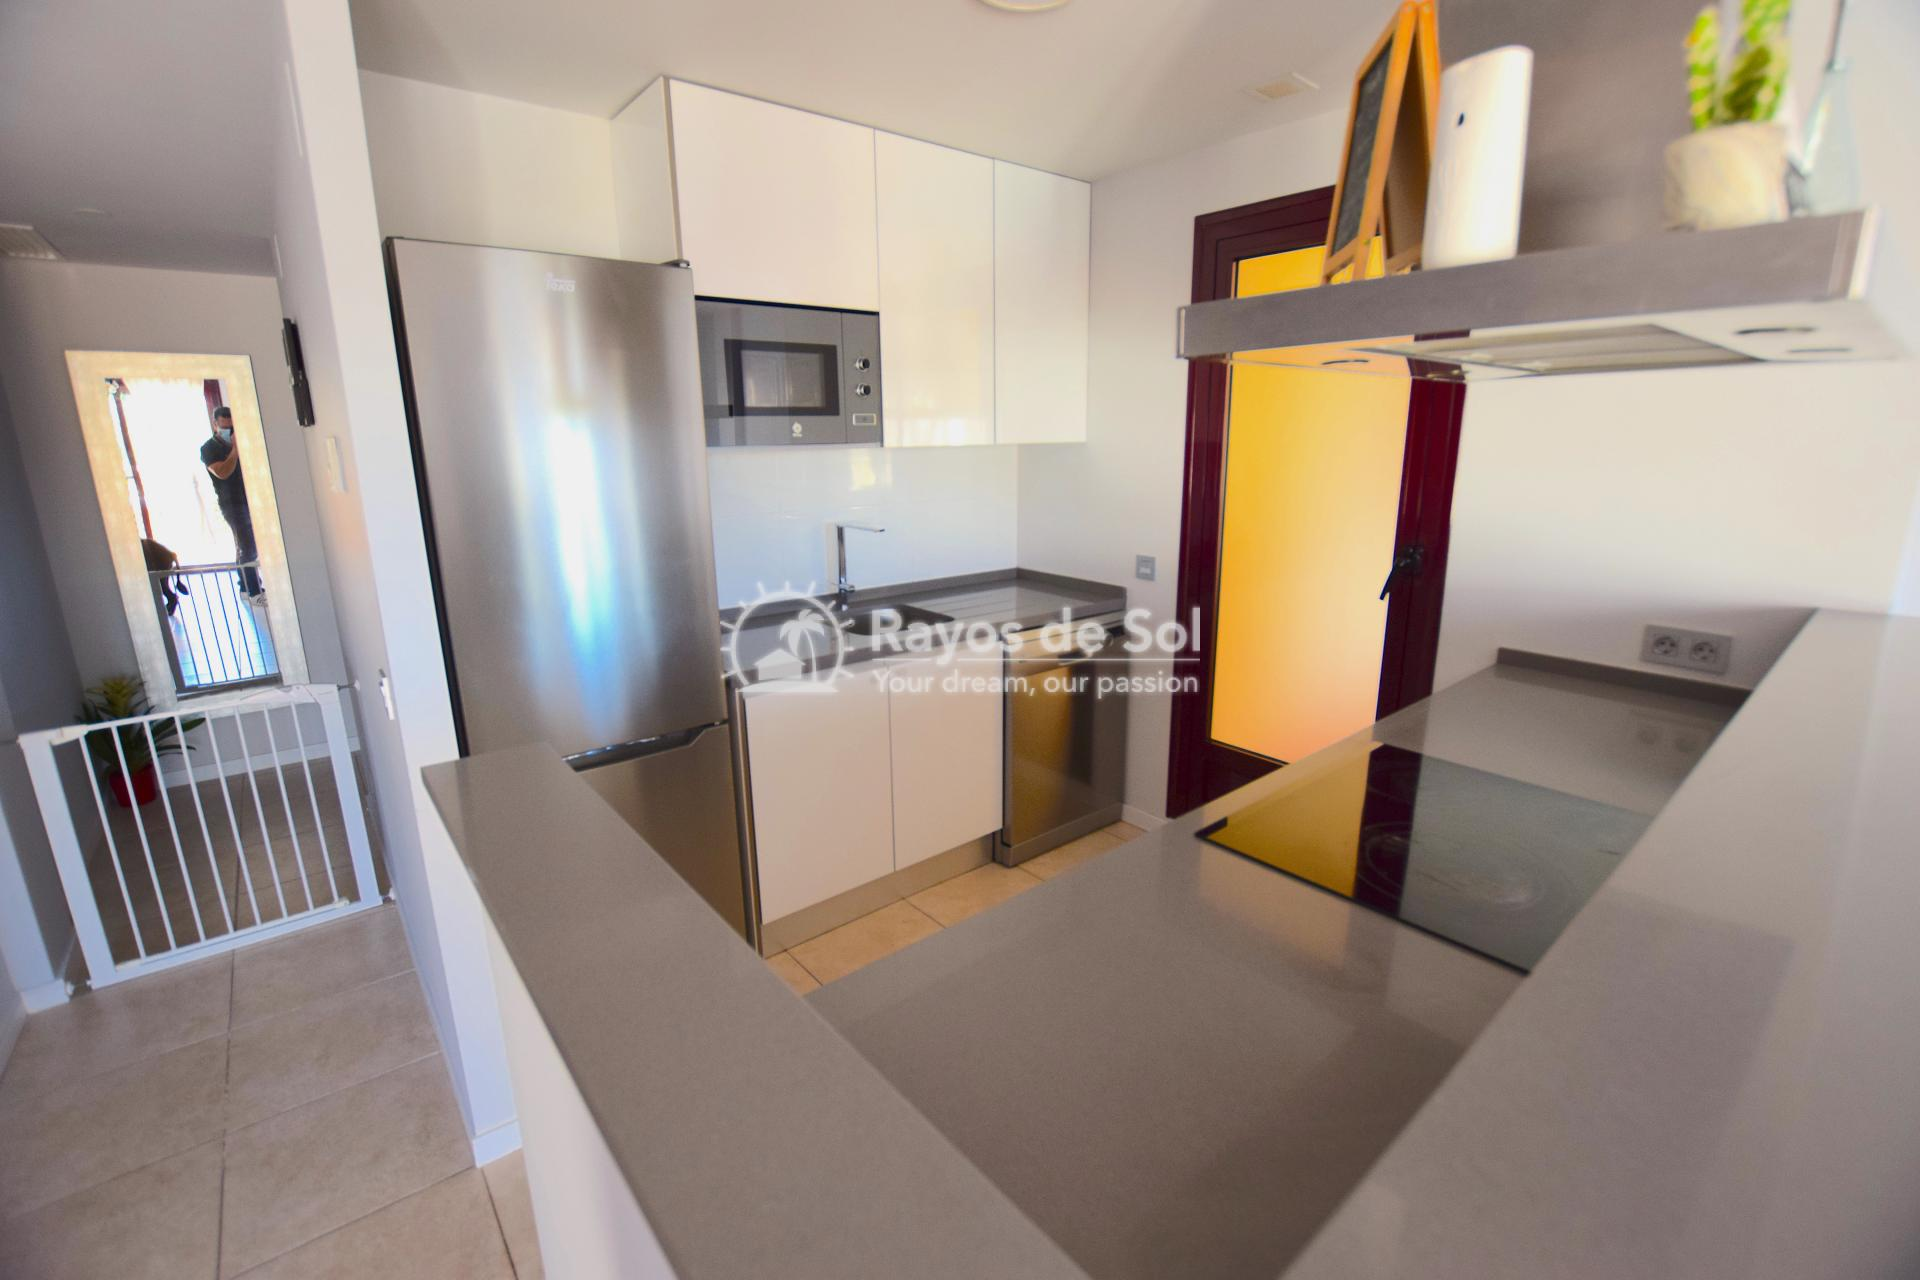 Penthouse with stunning views  in Los Alcazares, Costa Cálida (LARE0003) - 6